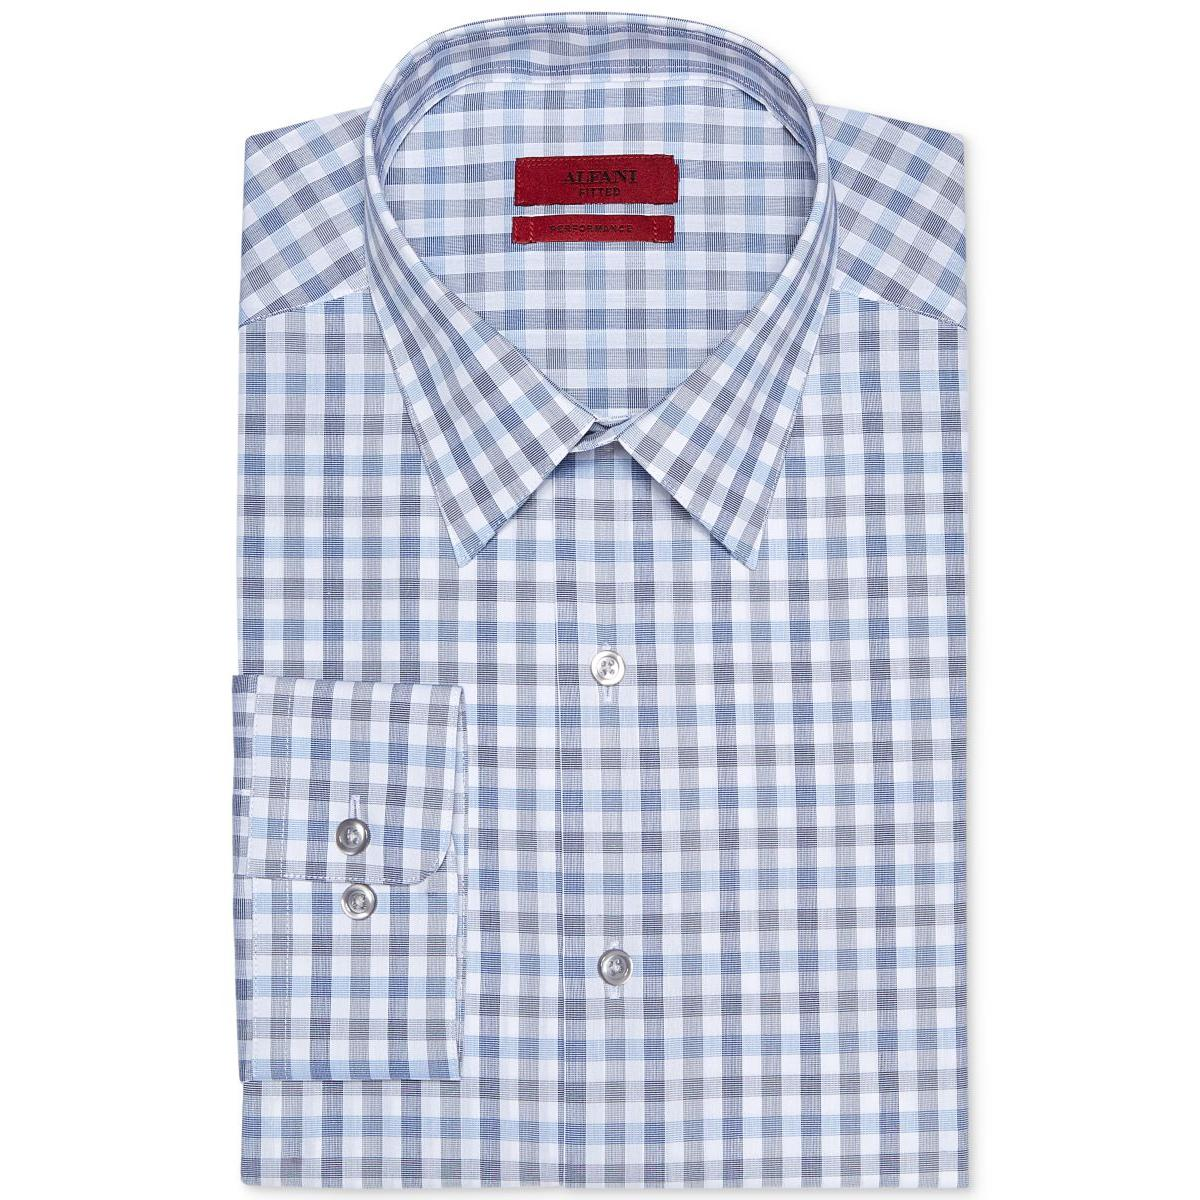 Alfani 5511 Mens Blue Checkered Fitted Button Down Shirt